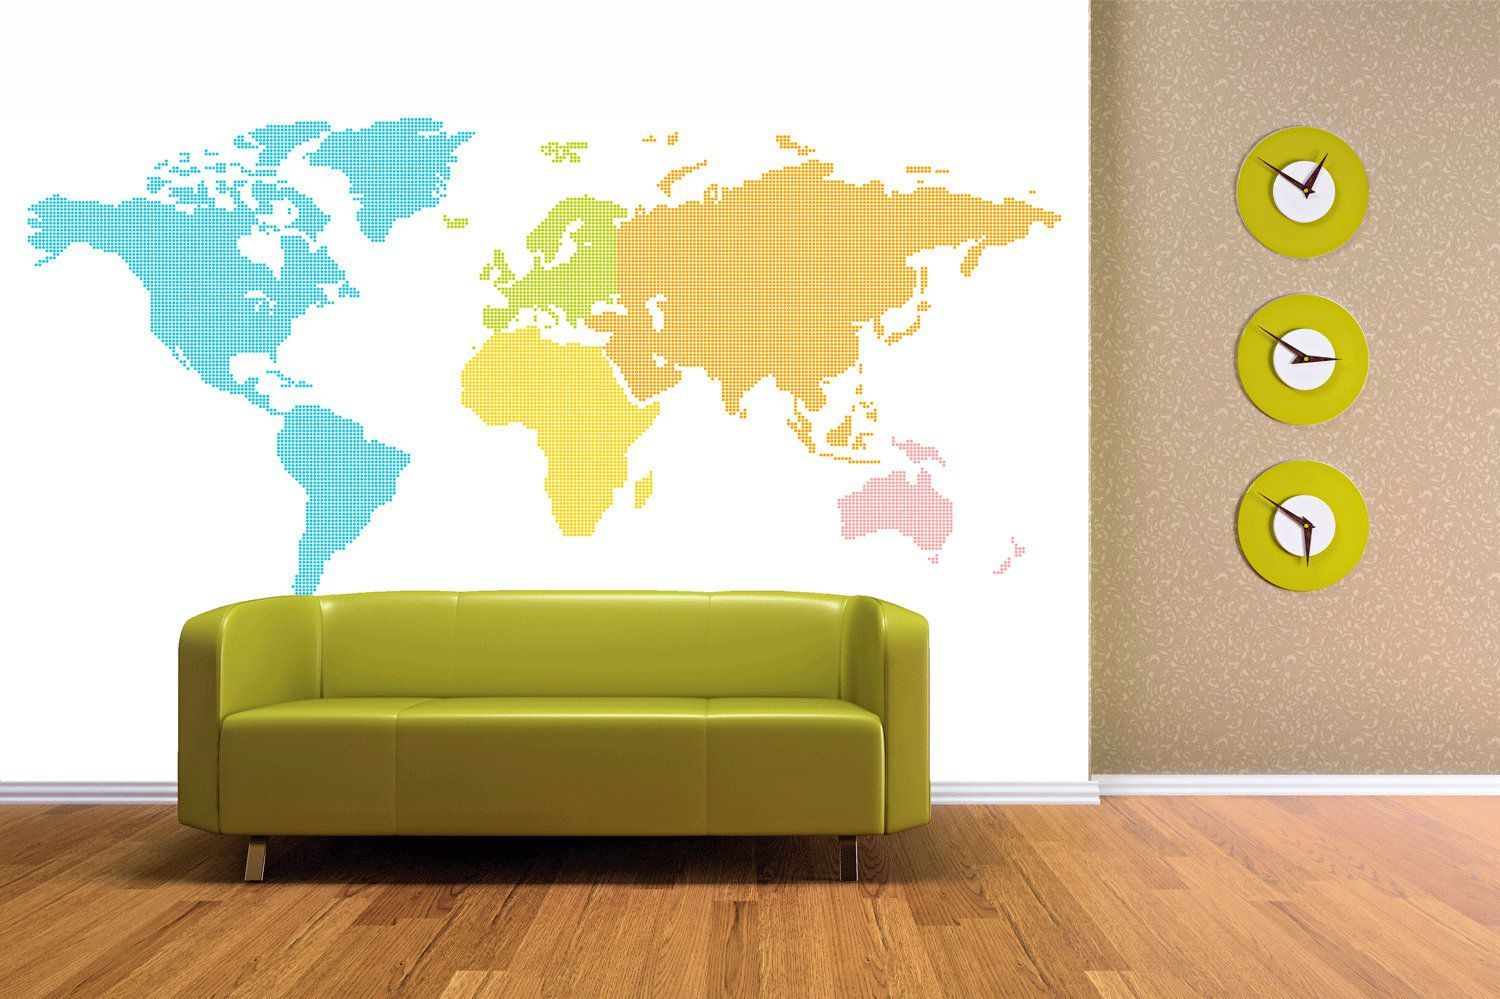 Wall mural world map, World map wall decals, Abstract world map wall mural, Wall mural Colorful Map of world for living room SKU 20341 #worldmapmural Wall mural world map, World map wall decals, Abstract world map wall mural, Wall mural Colorful Map of world for living room SKU 20341 #worldmapmural